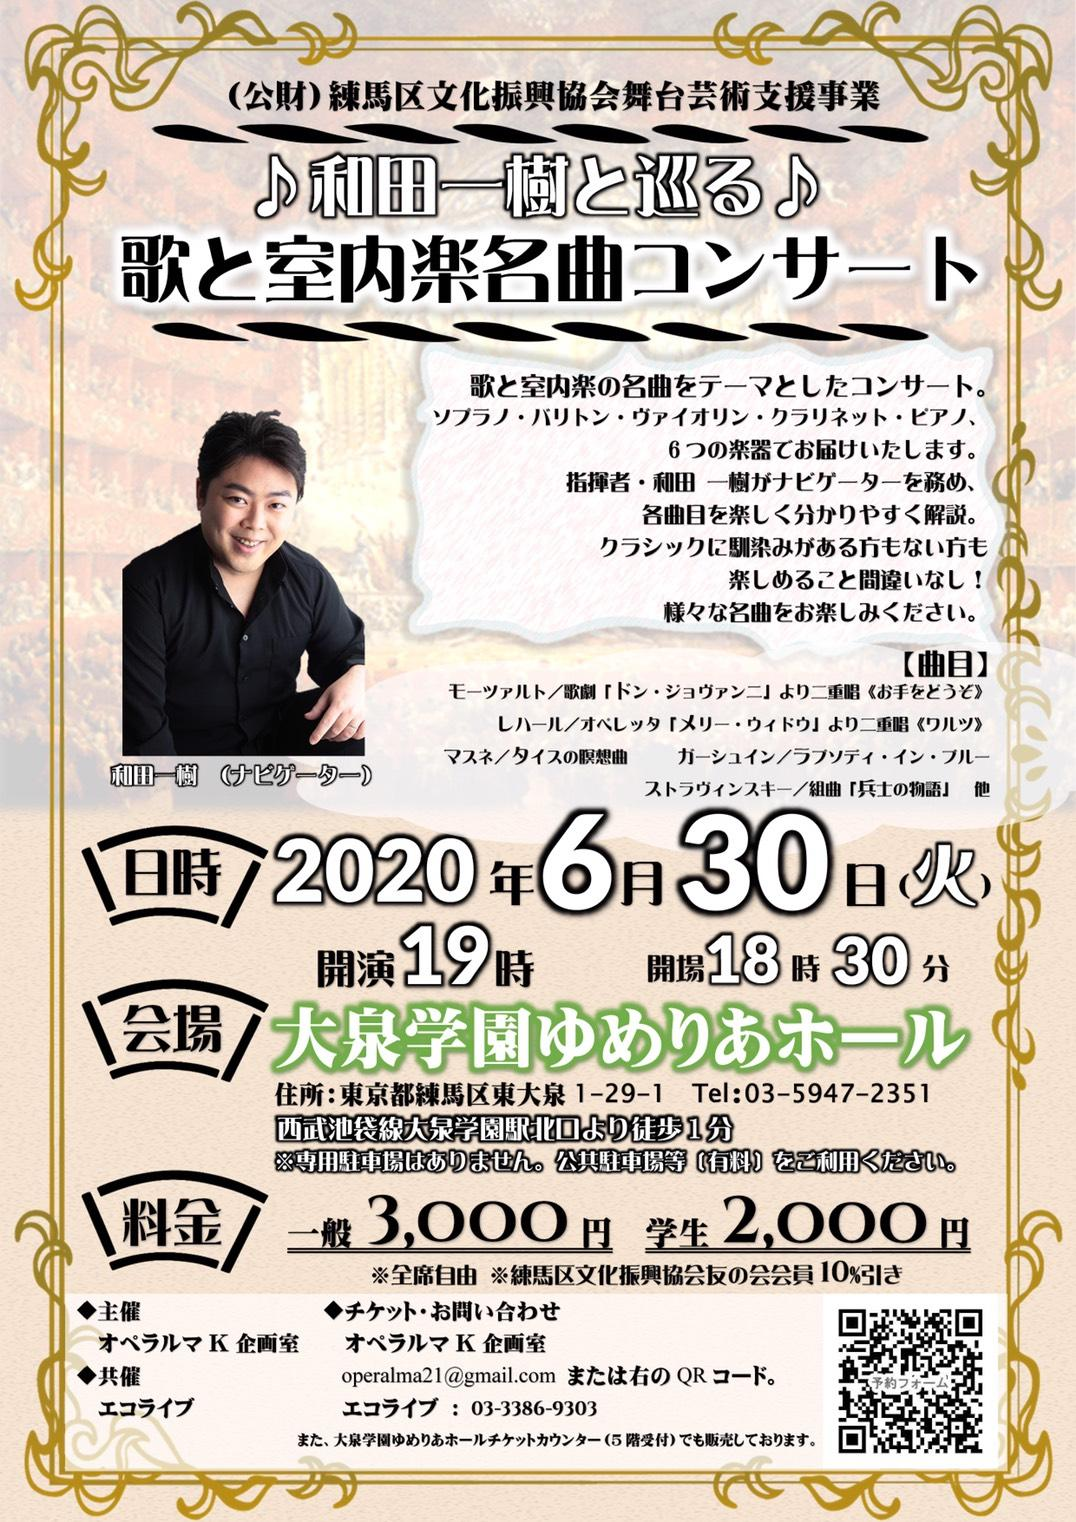 It rotates with Kazuki Wada ♪ Song and chamber music masterpiece concert